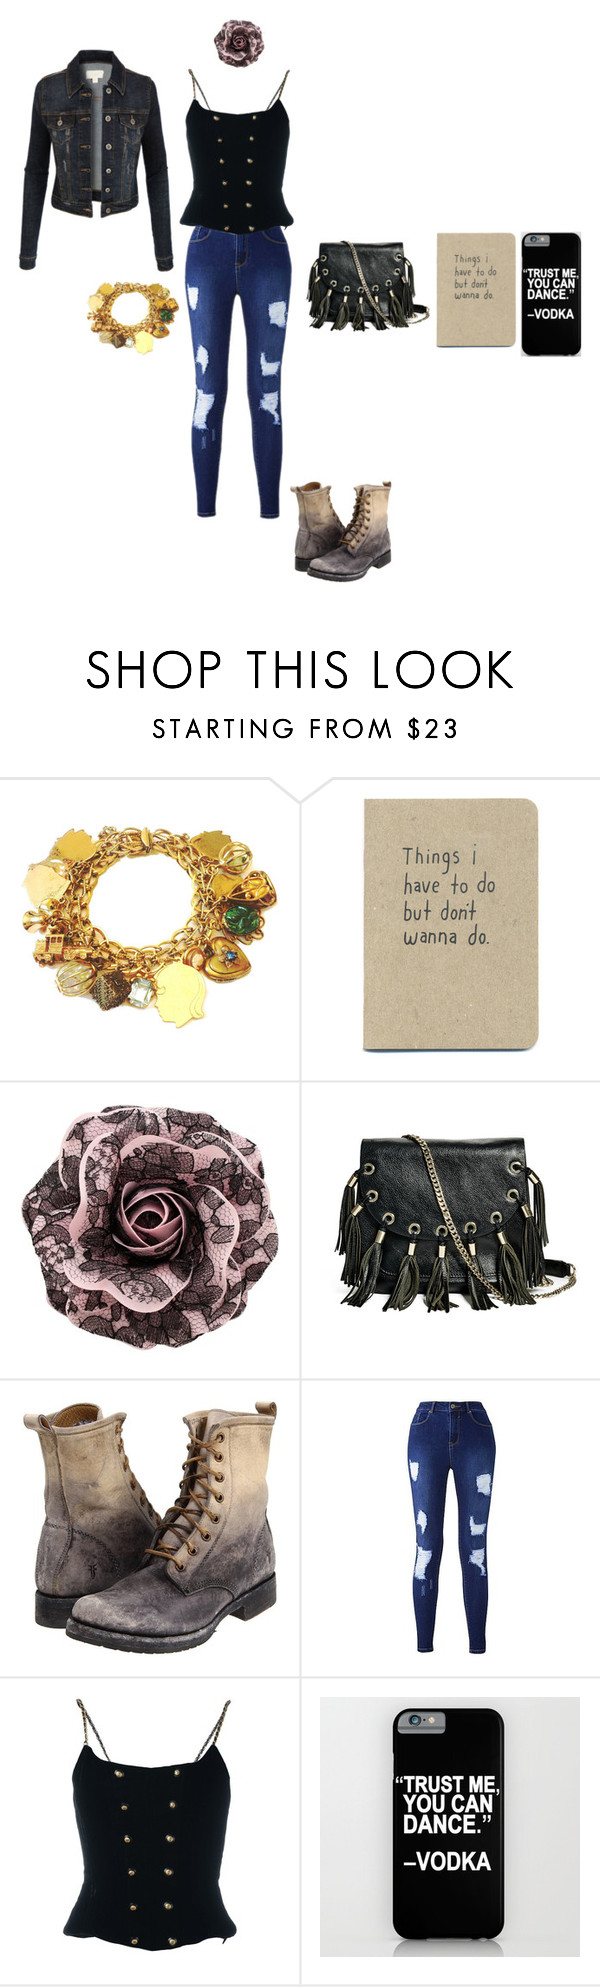 """""""Vintage girl"""" by cheshire-wolf ❤ liked on Polyvore featuring GUESS by Marciano, Frye, Chanel, LE3NO and vintage"""